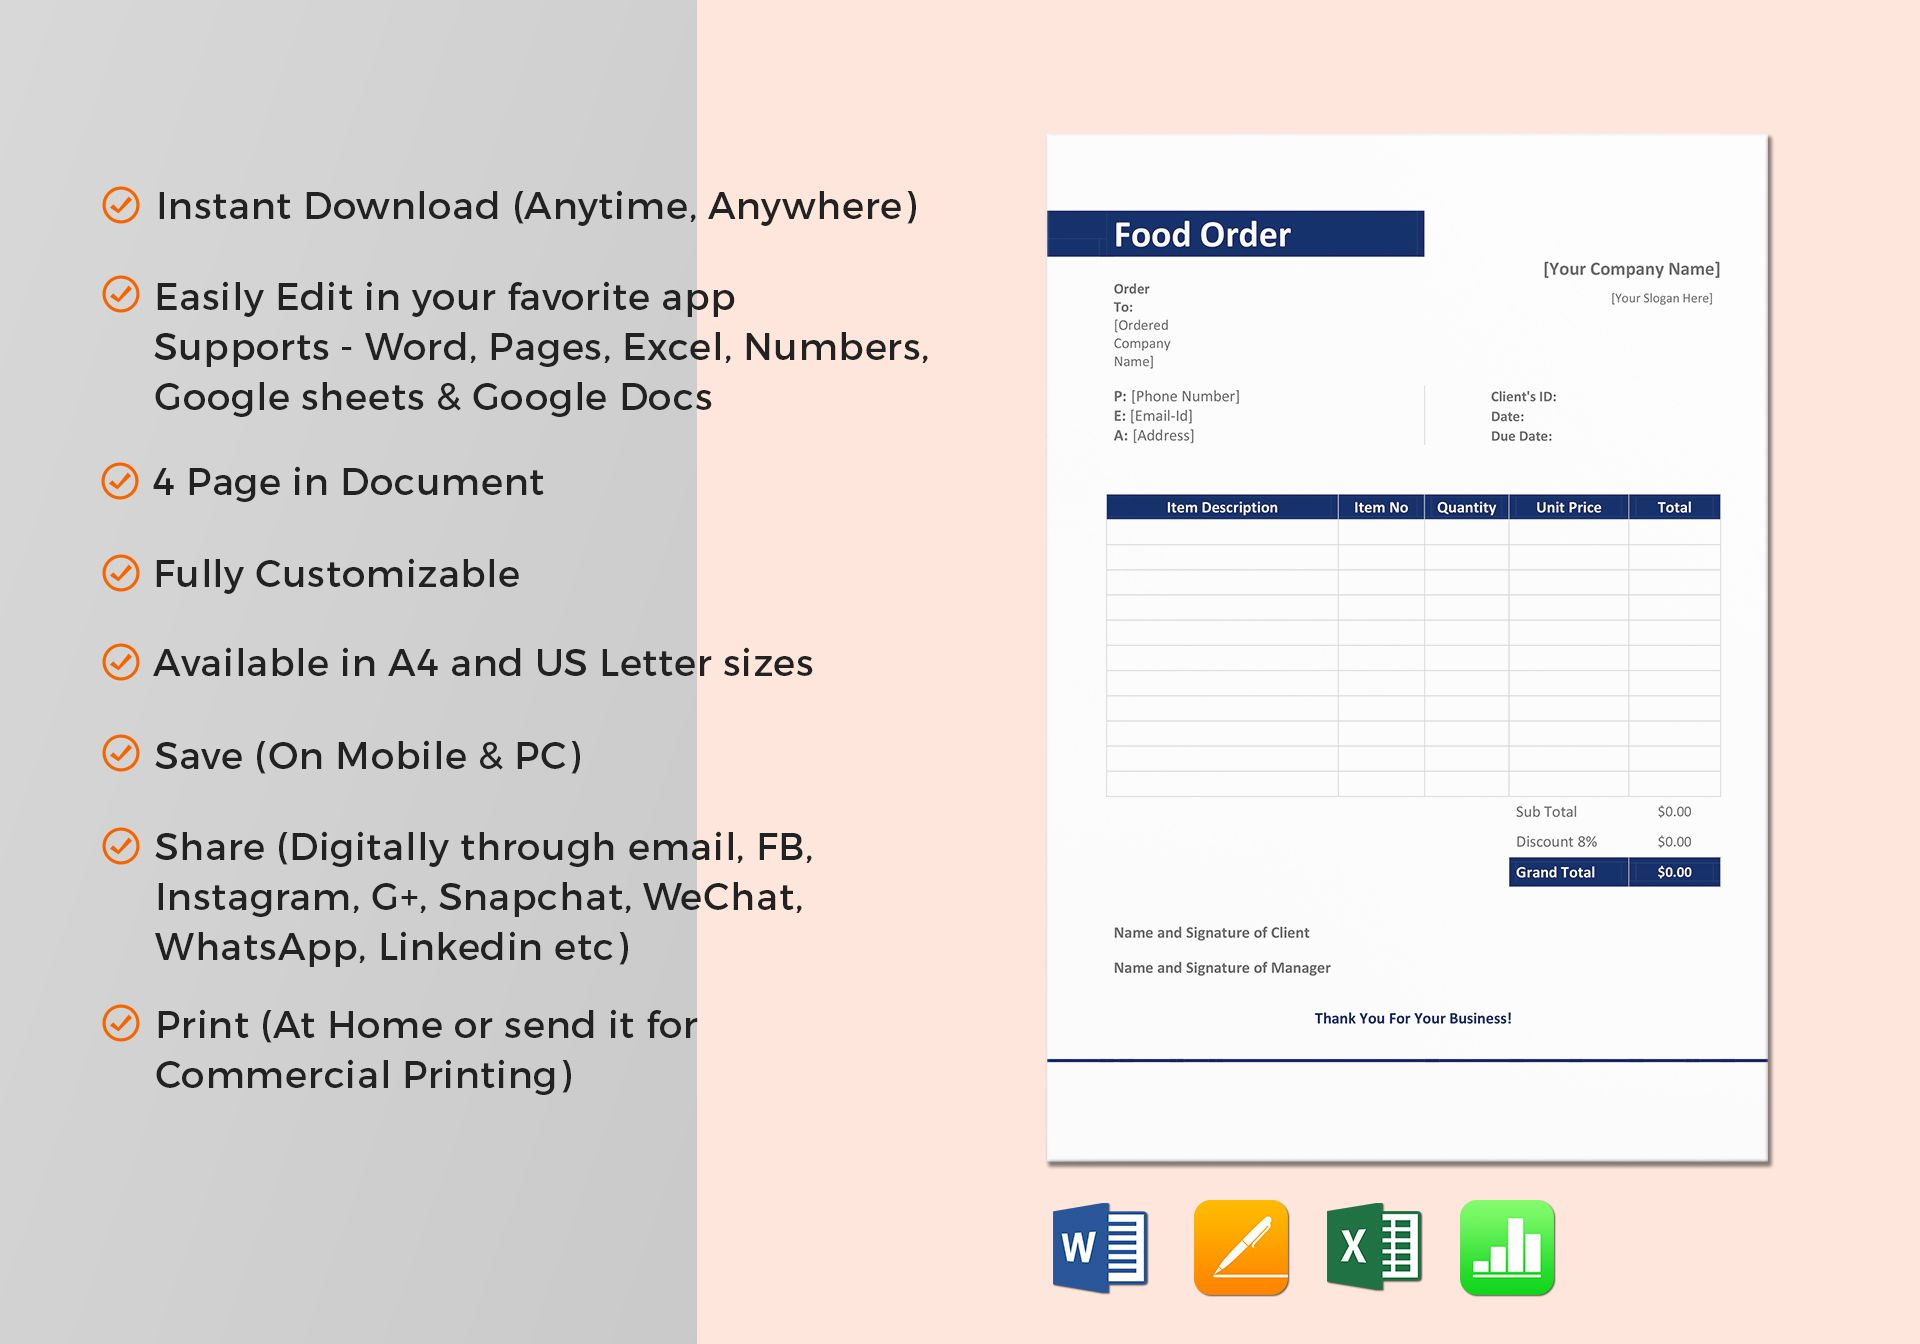 Sample Food Order Template